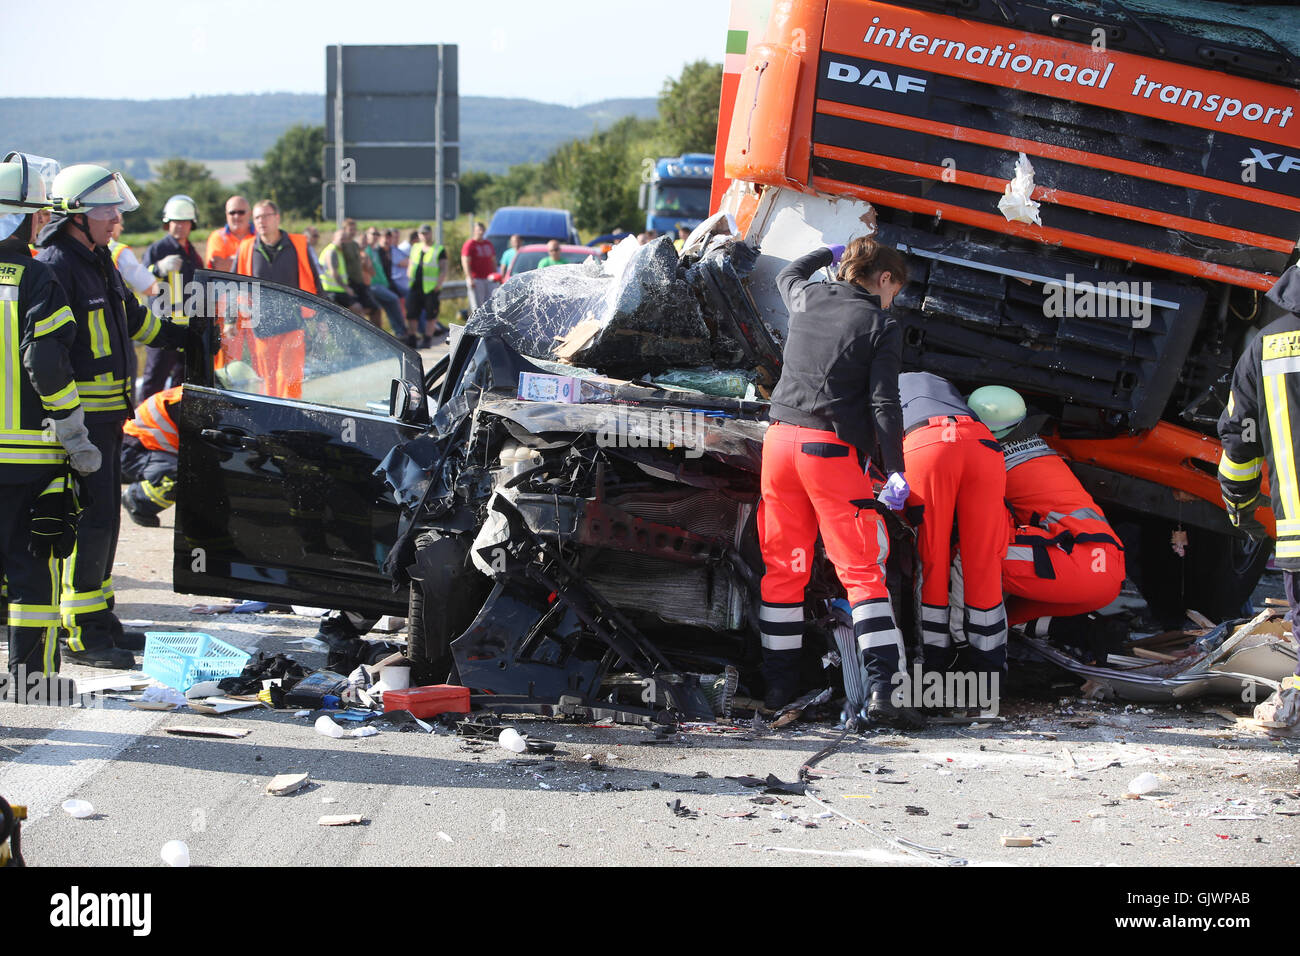 Truck Accident On A61 Motorway Stockfotos & Truck Accident On A61 ...